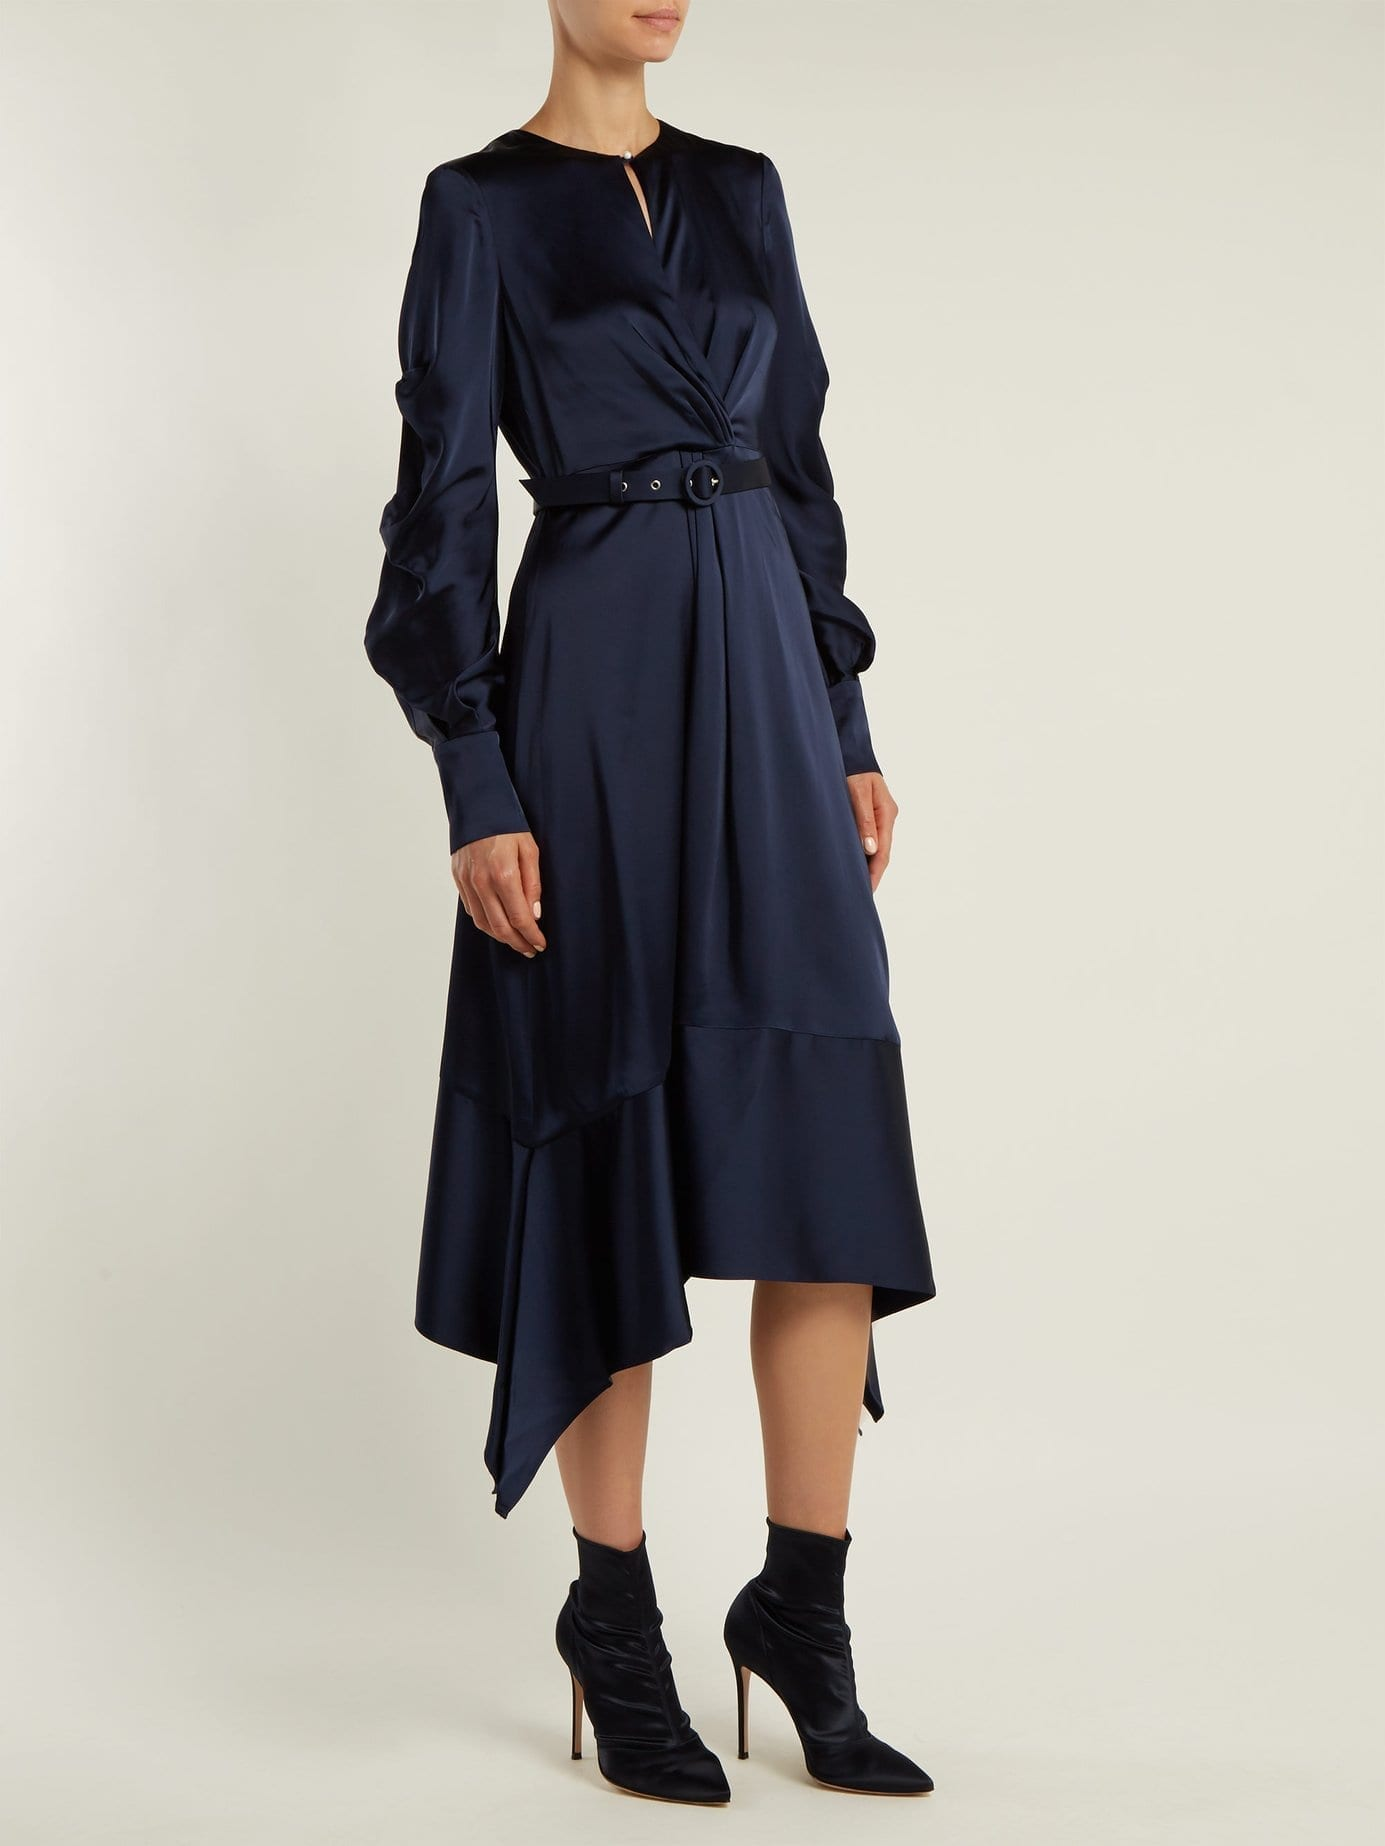 JONATHAN SIMKHAI Asymmetric Satin Midi Navy Dress